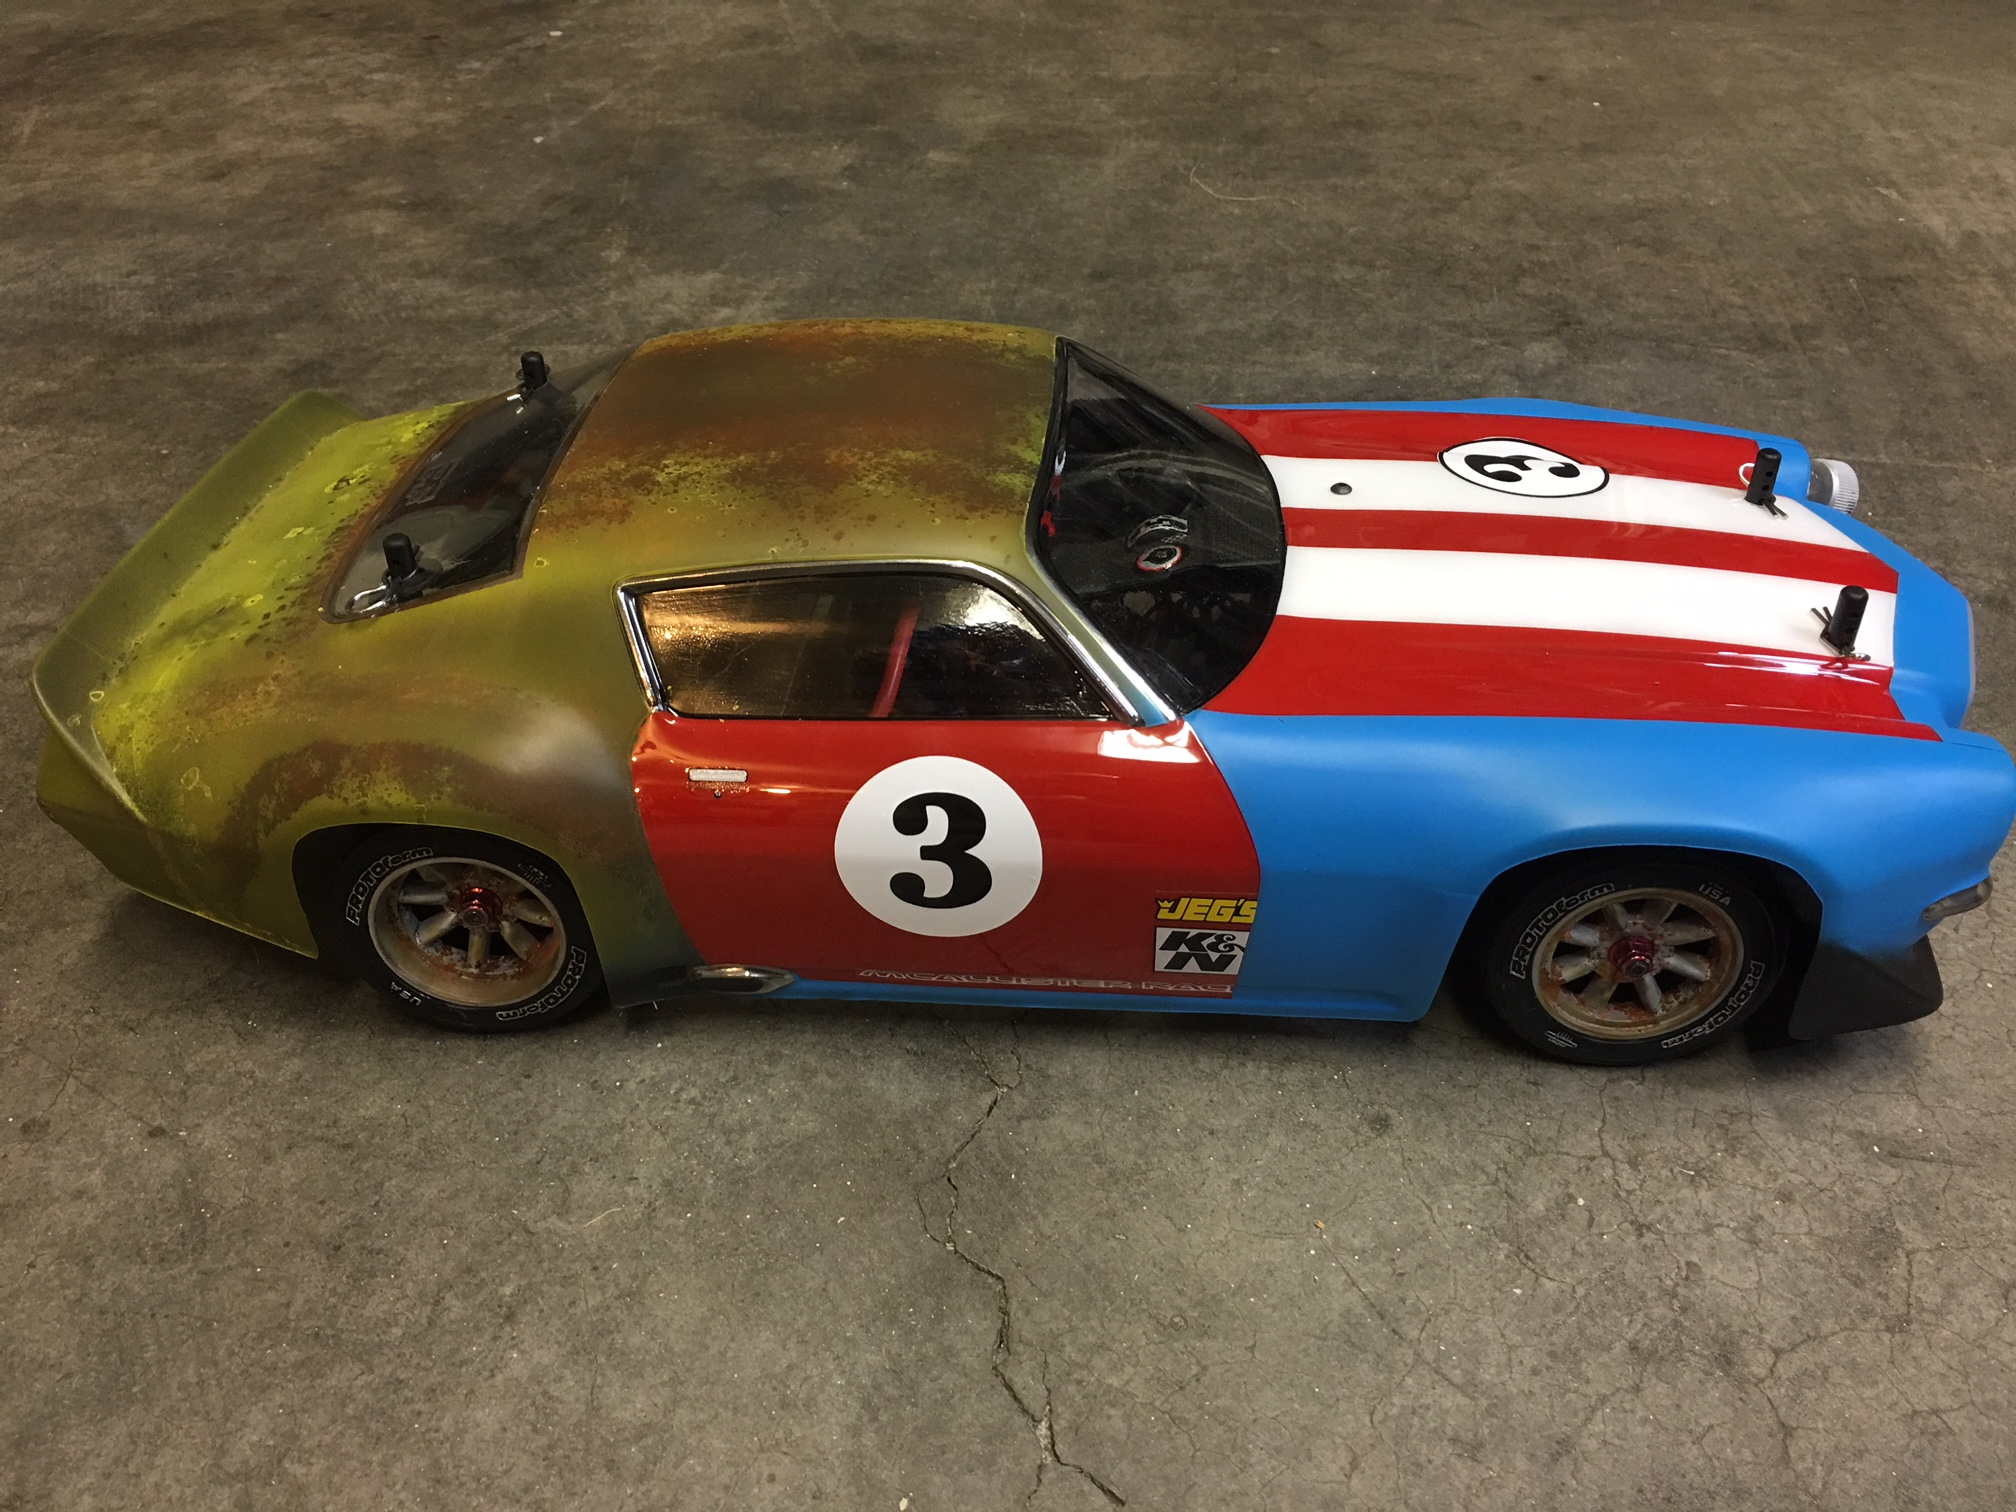 U.S. Vintage Trans-Am Racing Part 2 - Page 747 - R/C Tech Forums